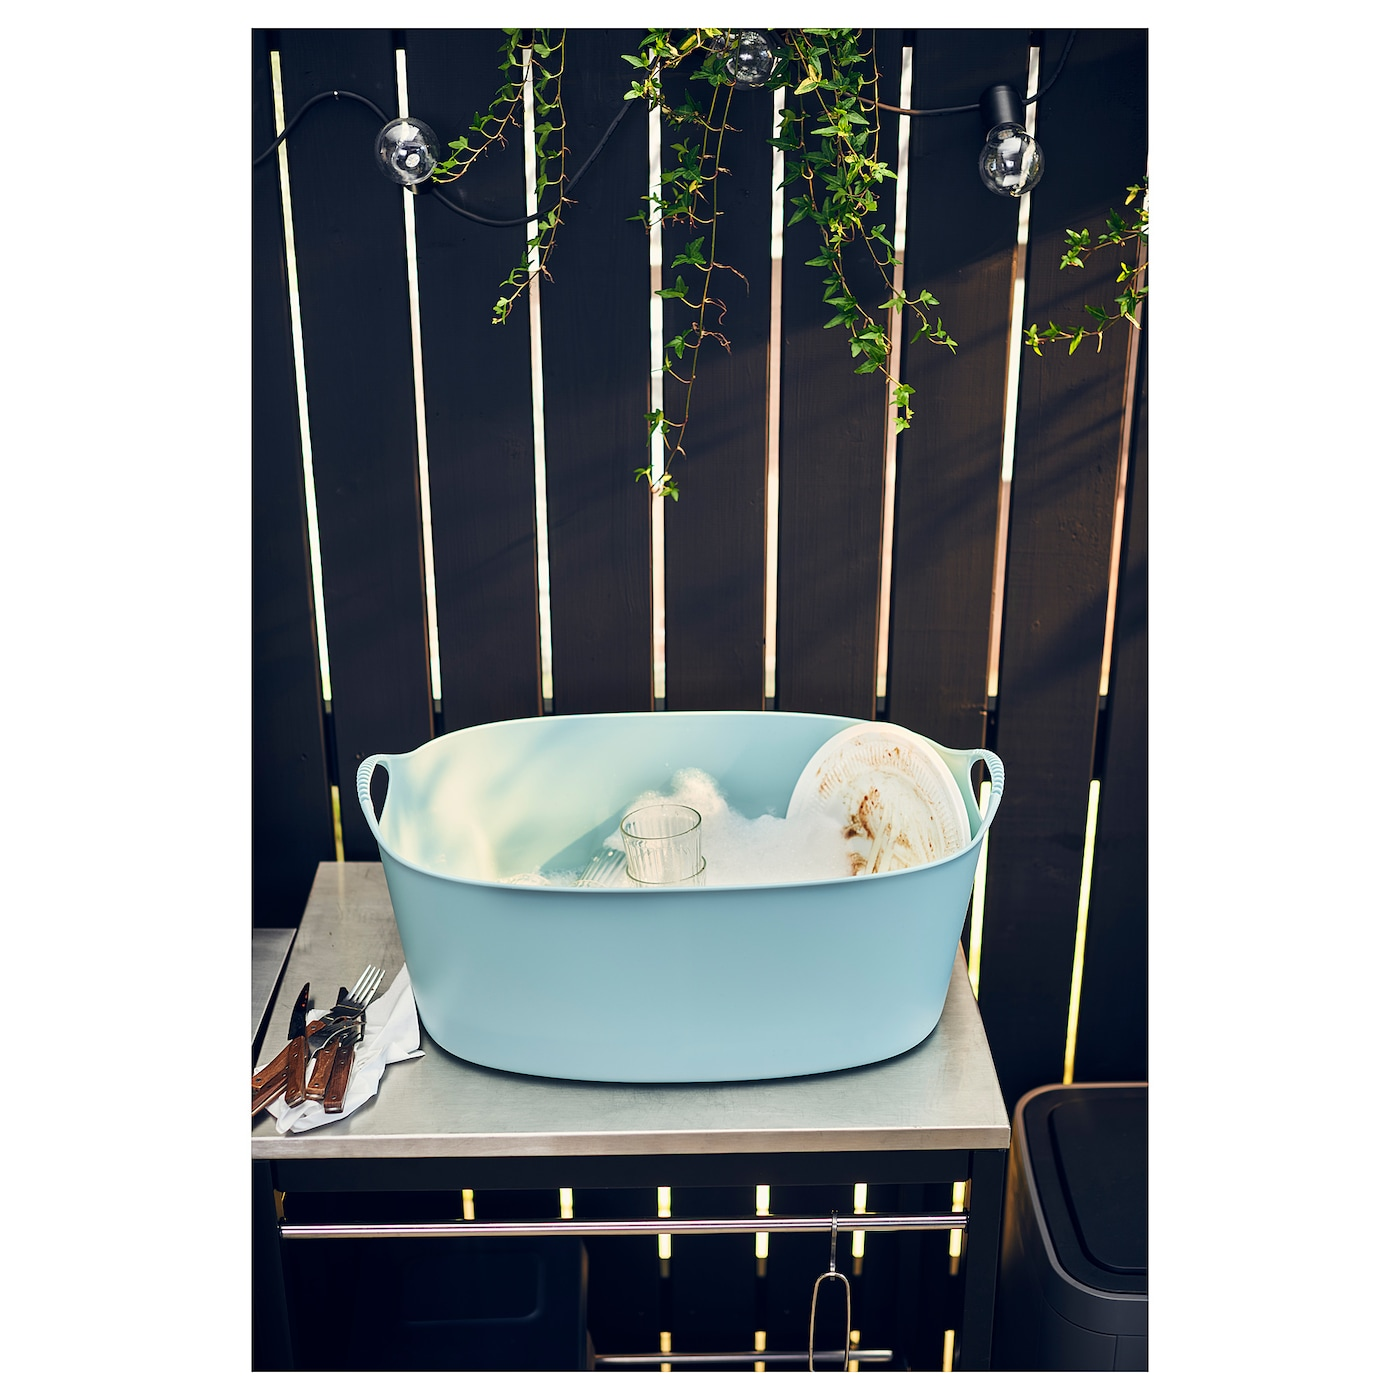 IKEA TORKIS flexi laundry basket, in-/outdoor Suitable for both indoor and outdoor use.